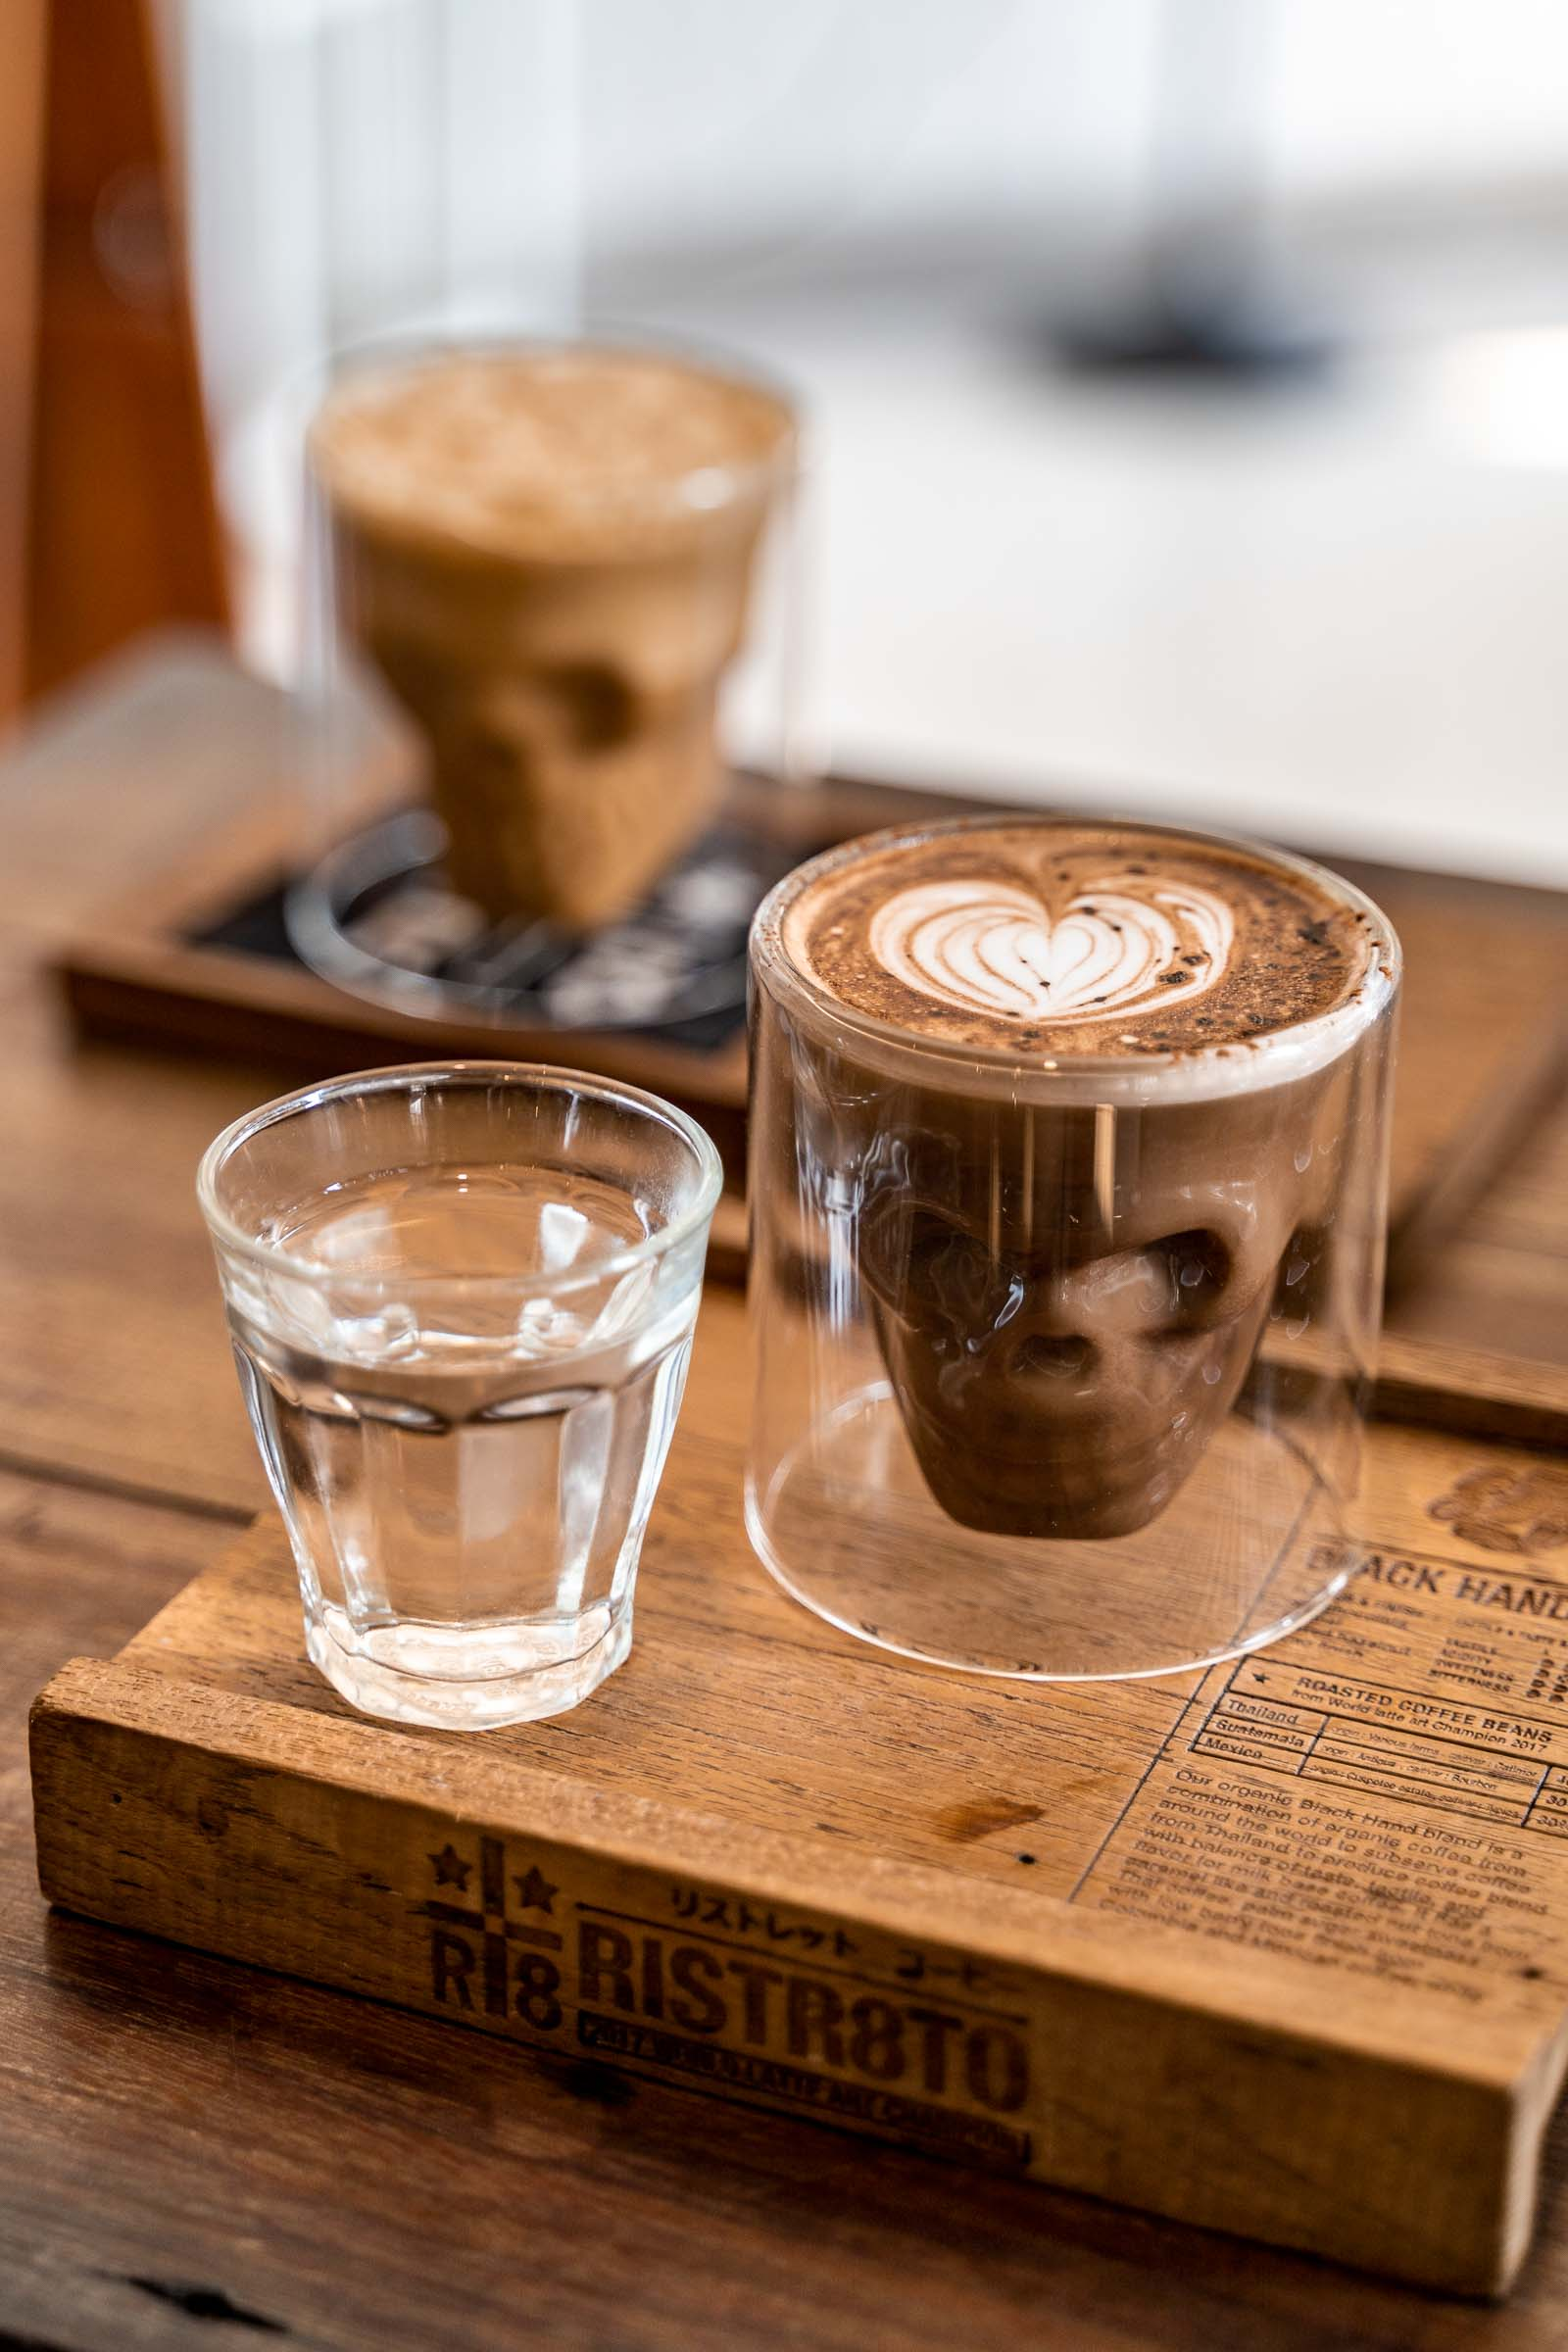 Coffee in a skull shaped glass at Ristr8to Specialty Coffee in Chiang Mai